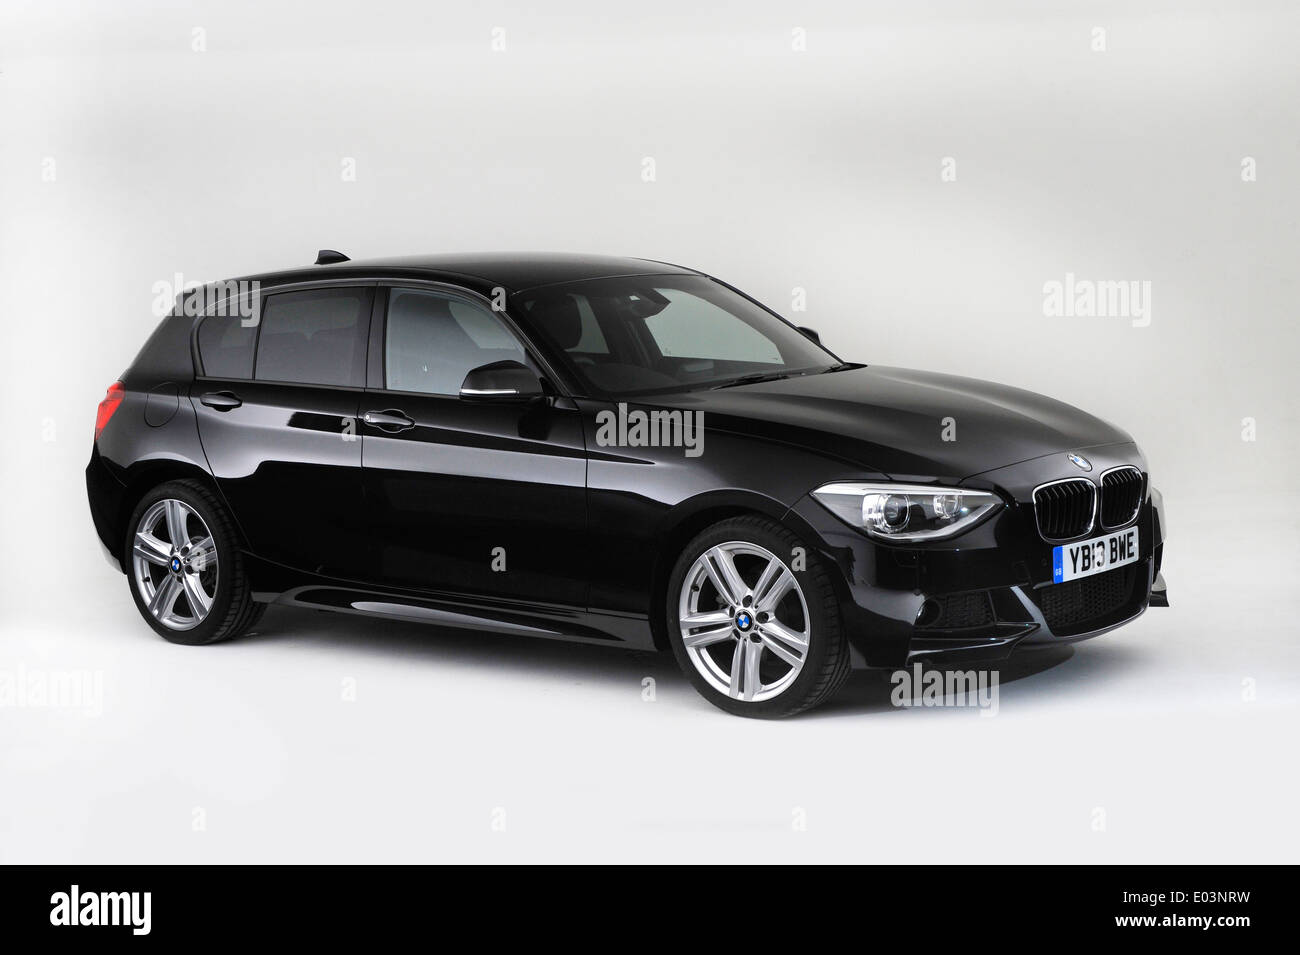 2013 BMW 118d - Stock Image